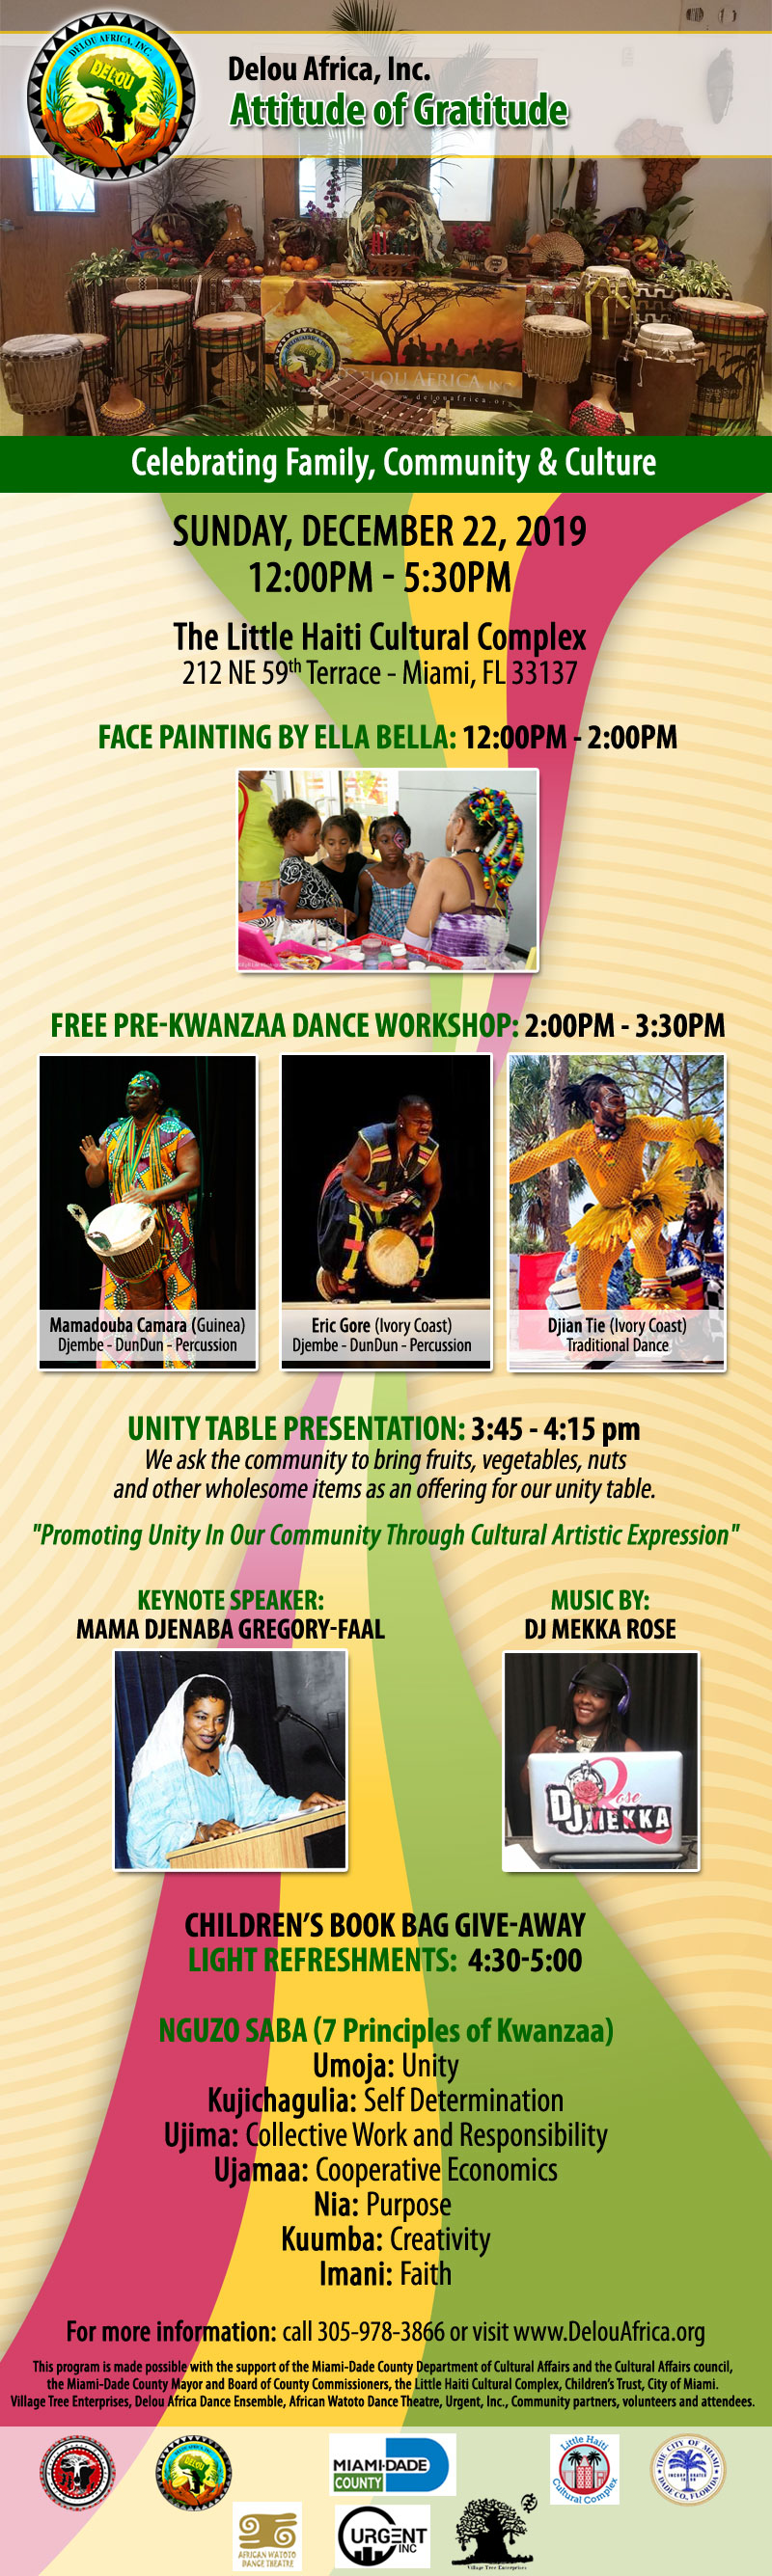 Kwanzaa event flyer